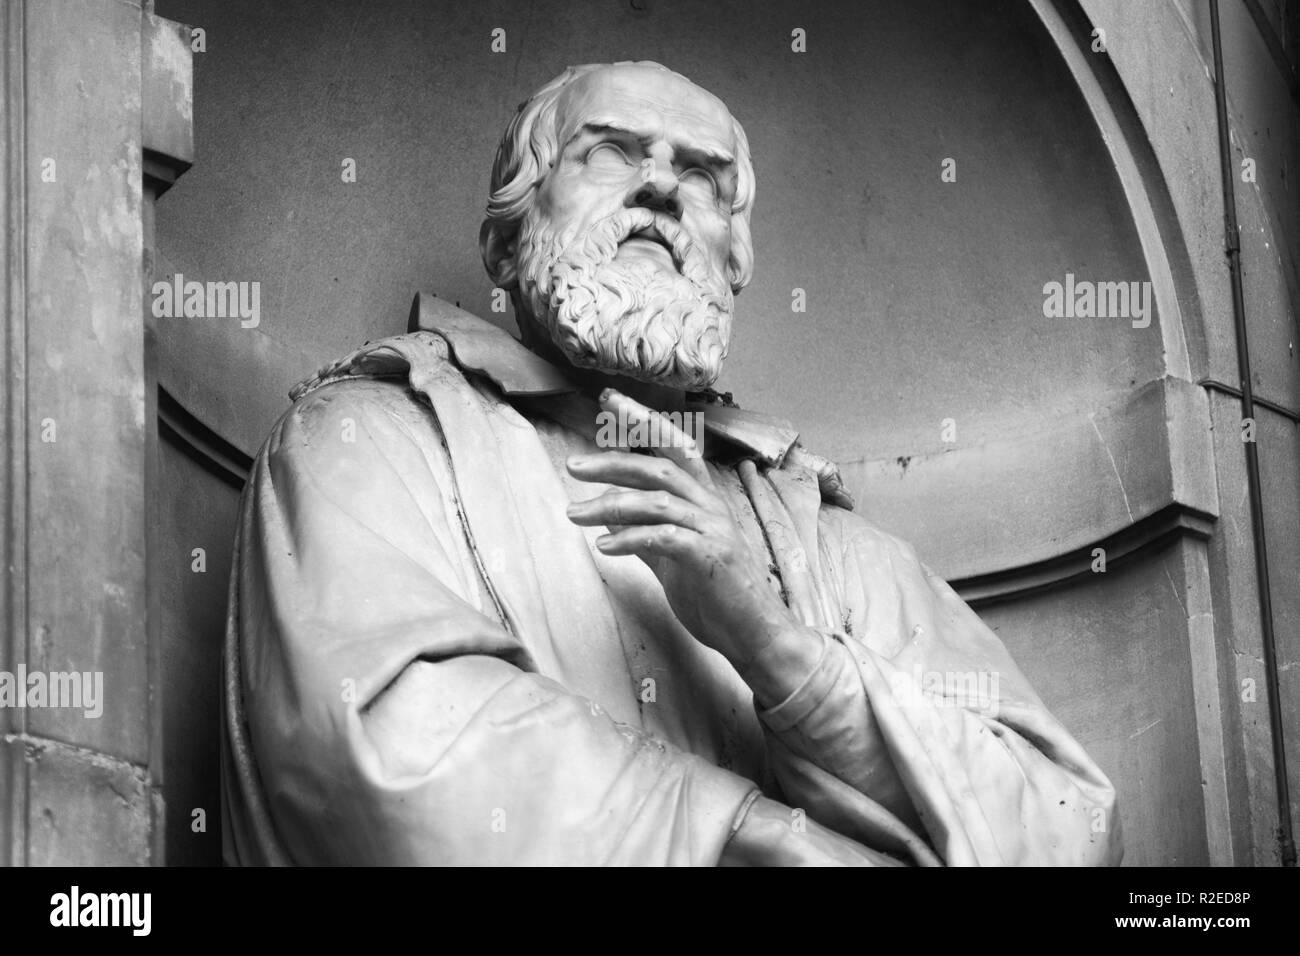 portrait of the famous scientist and astronomer Galileo Galilei - Stock Image